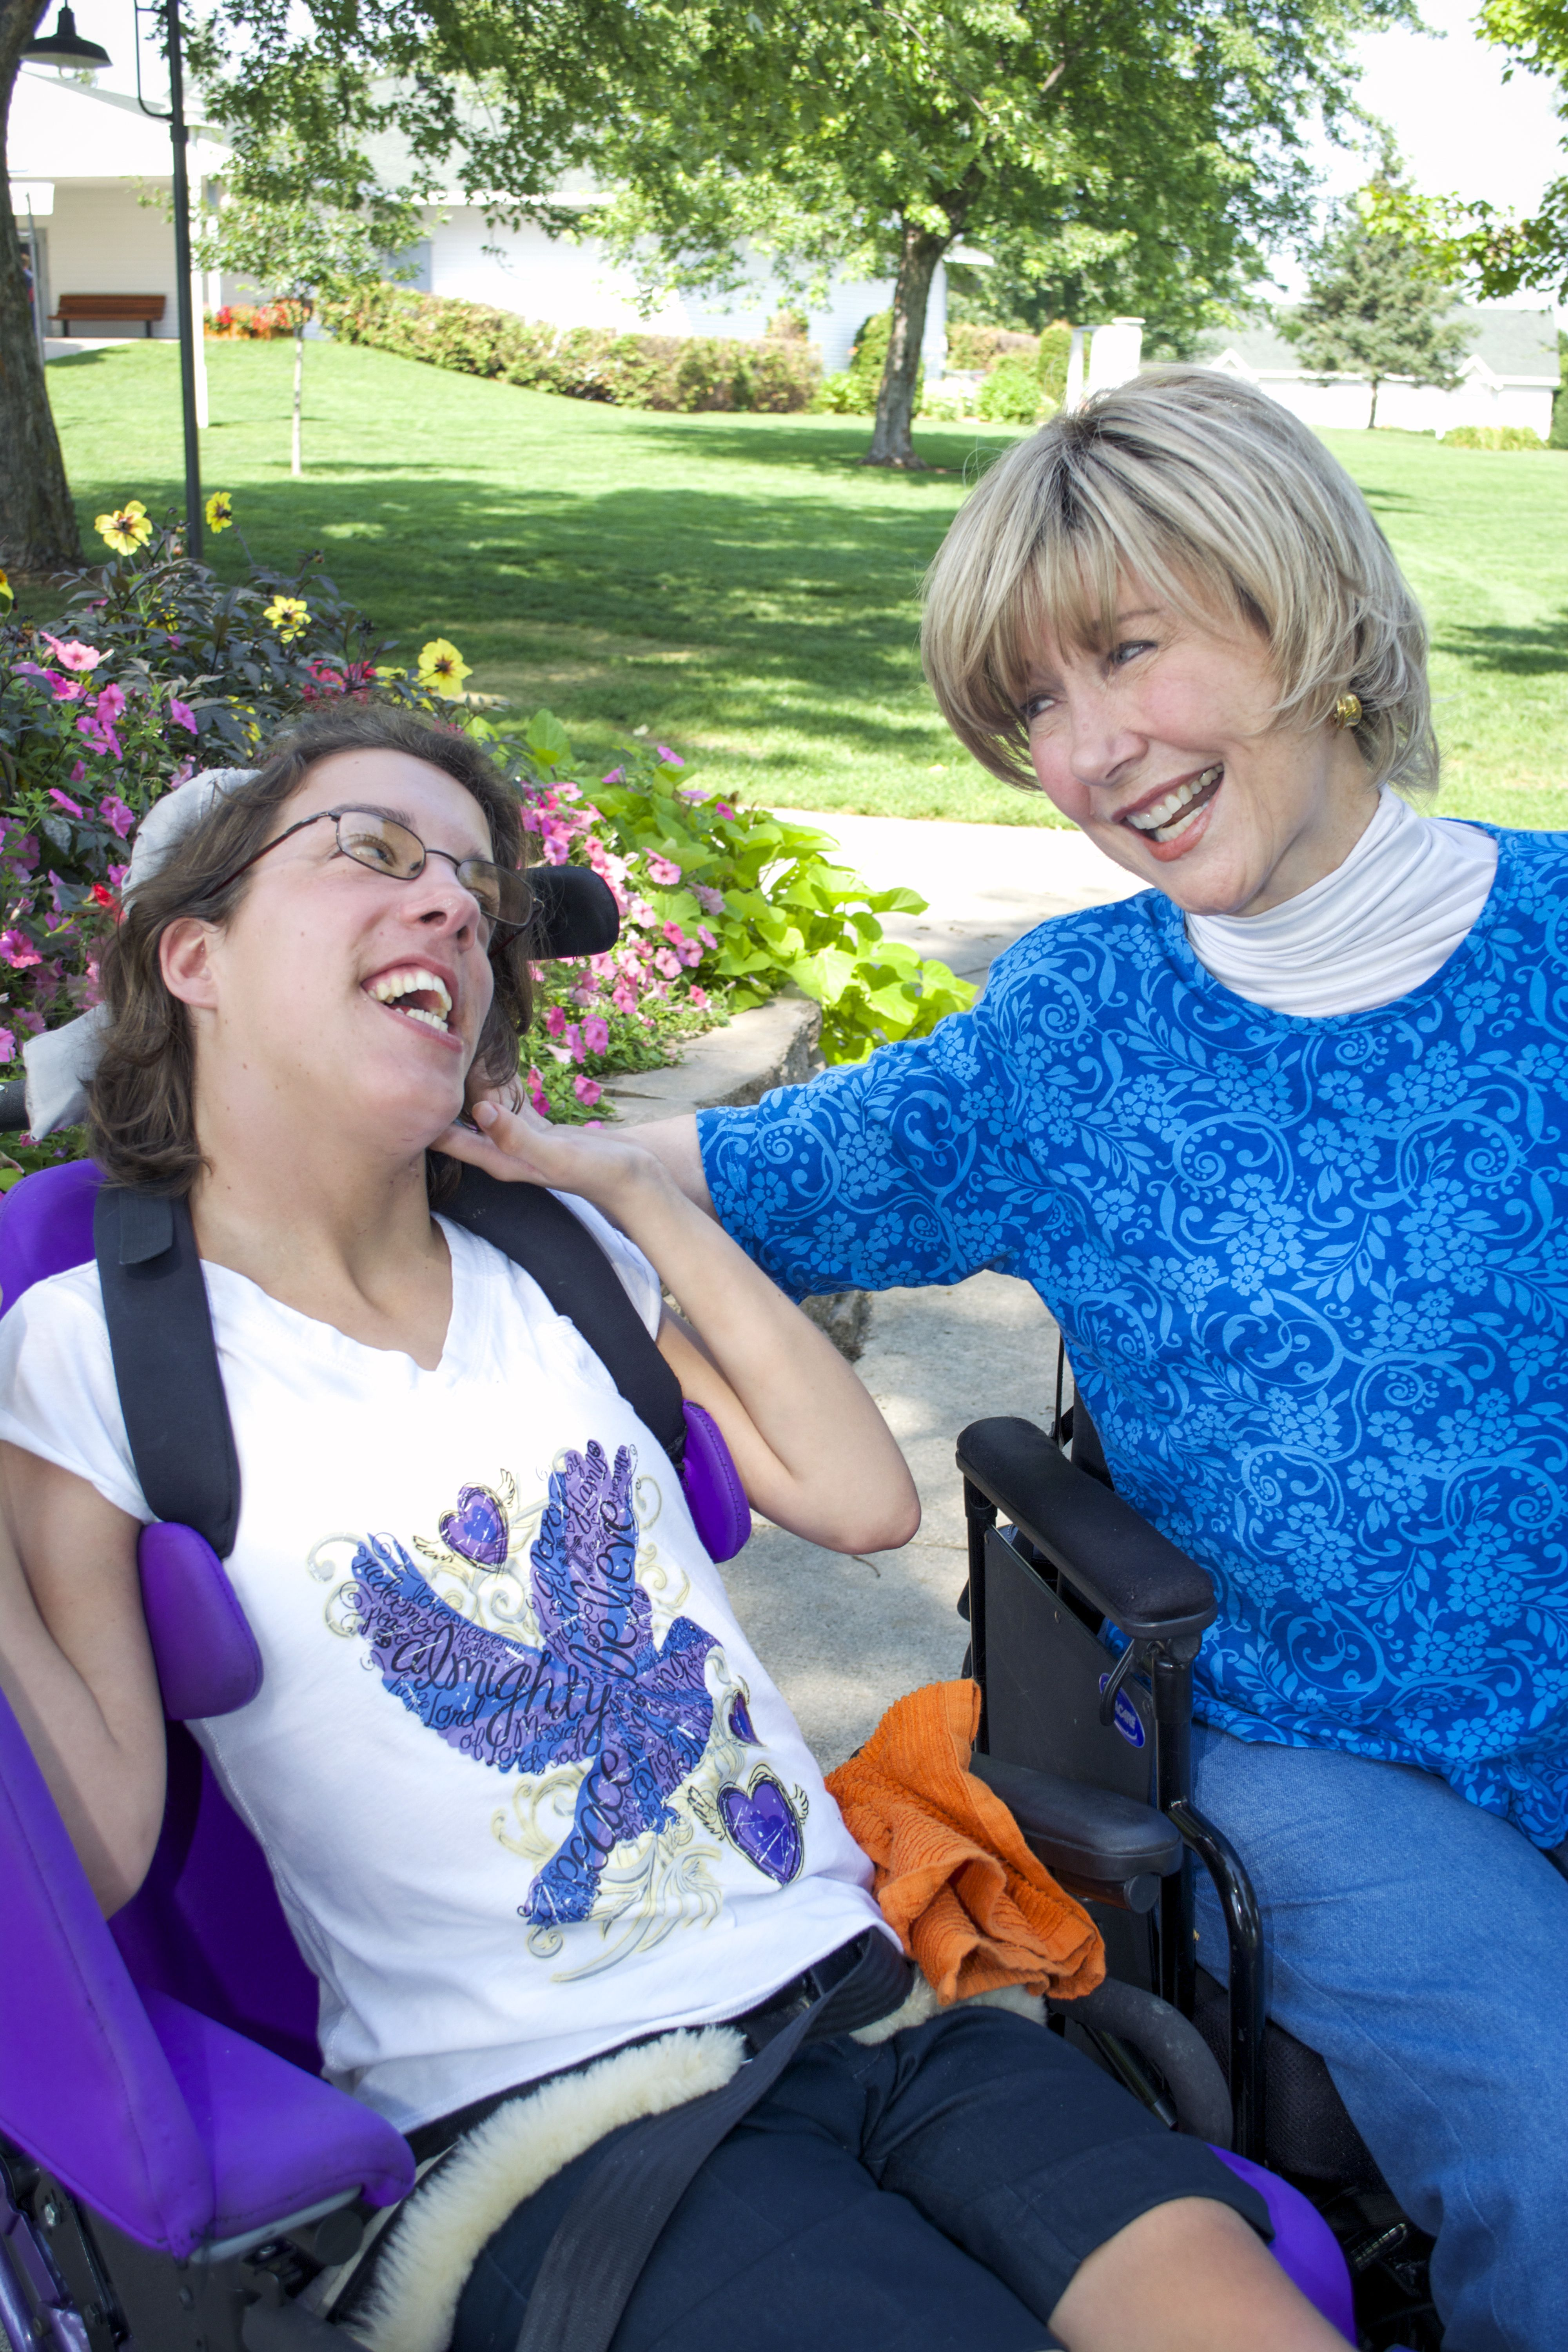 Joni Eareckson Tada and a friend